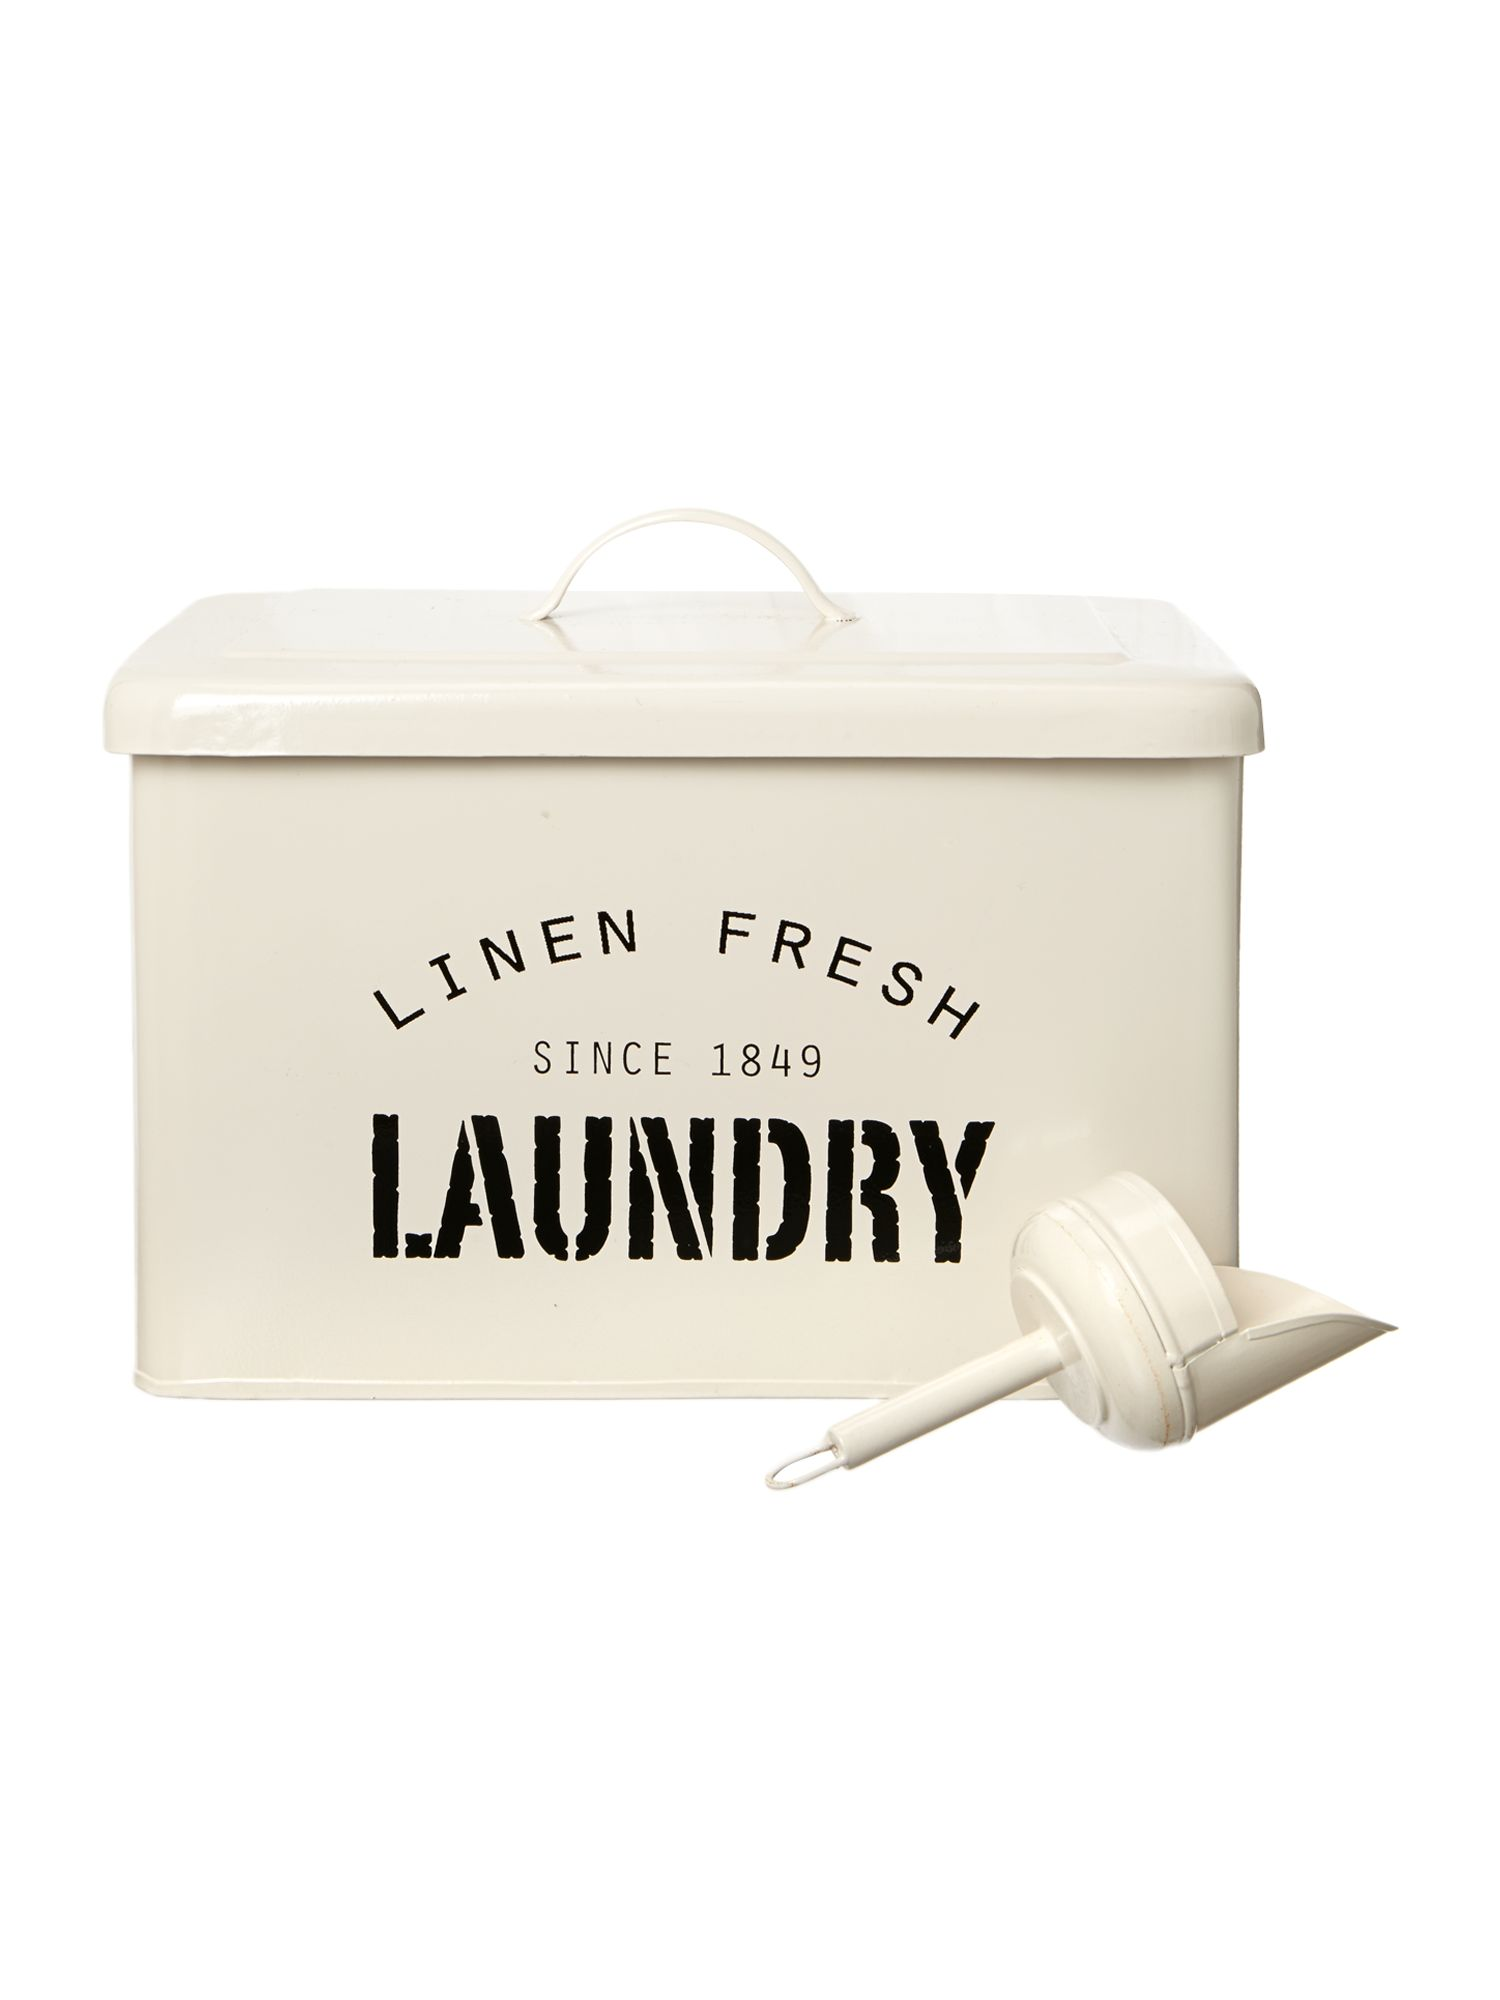 Laundry tin box with removable scoop